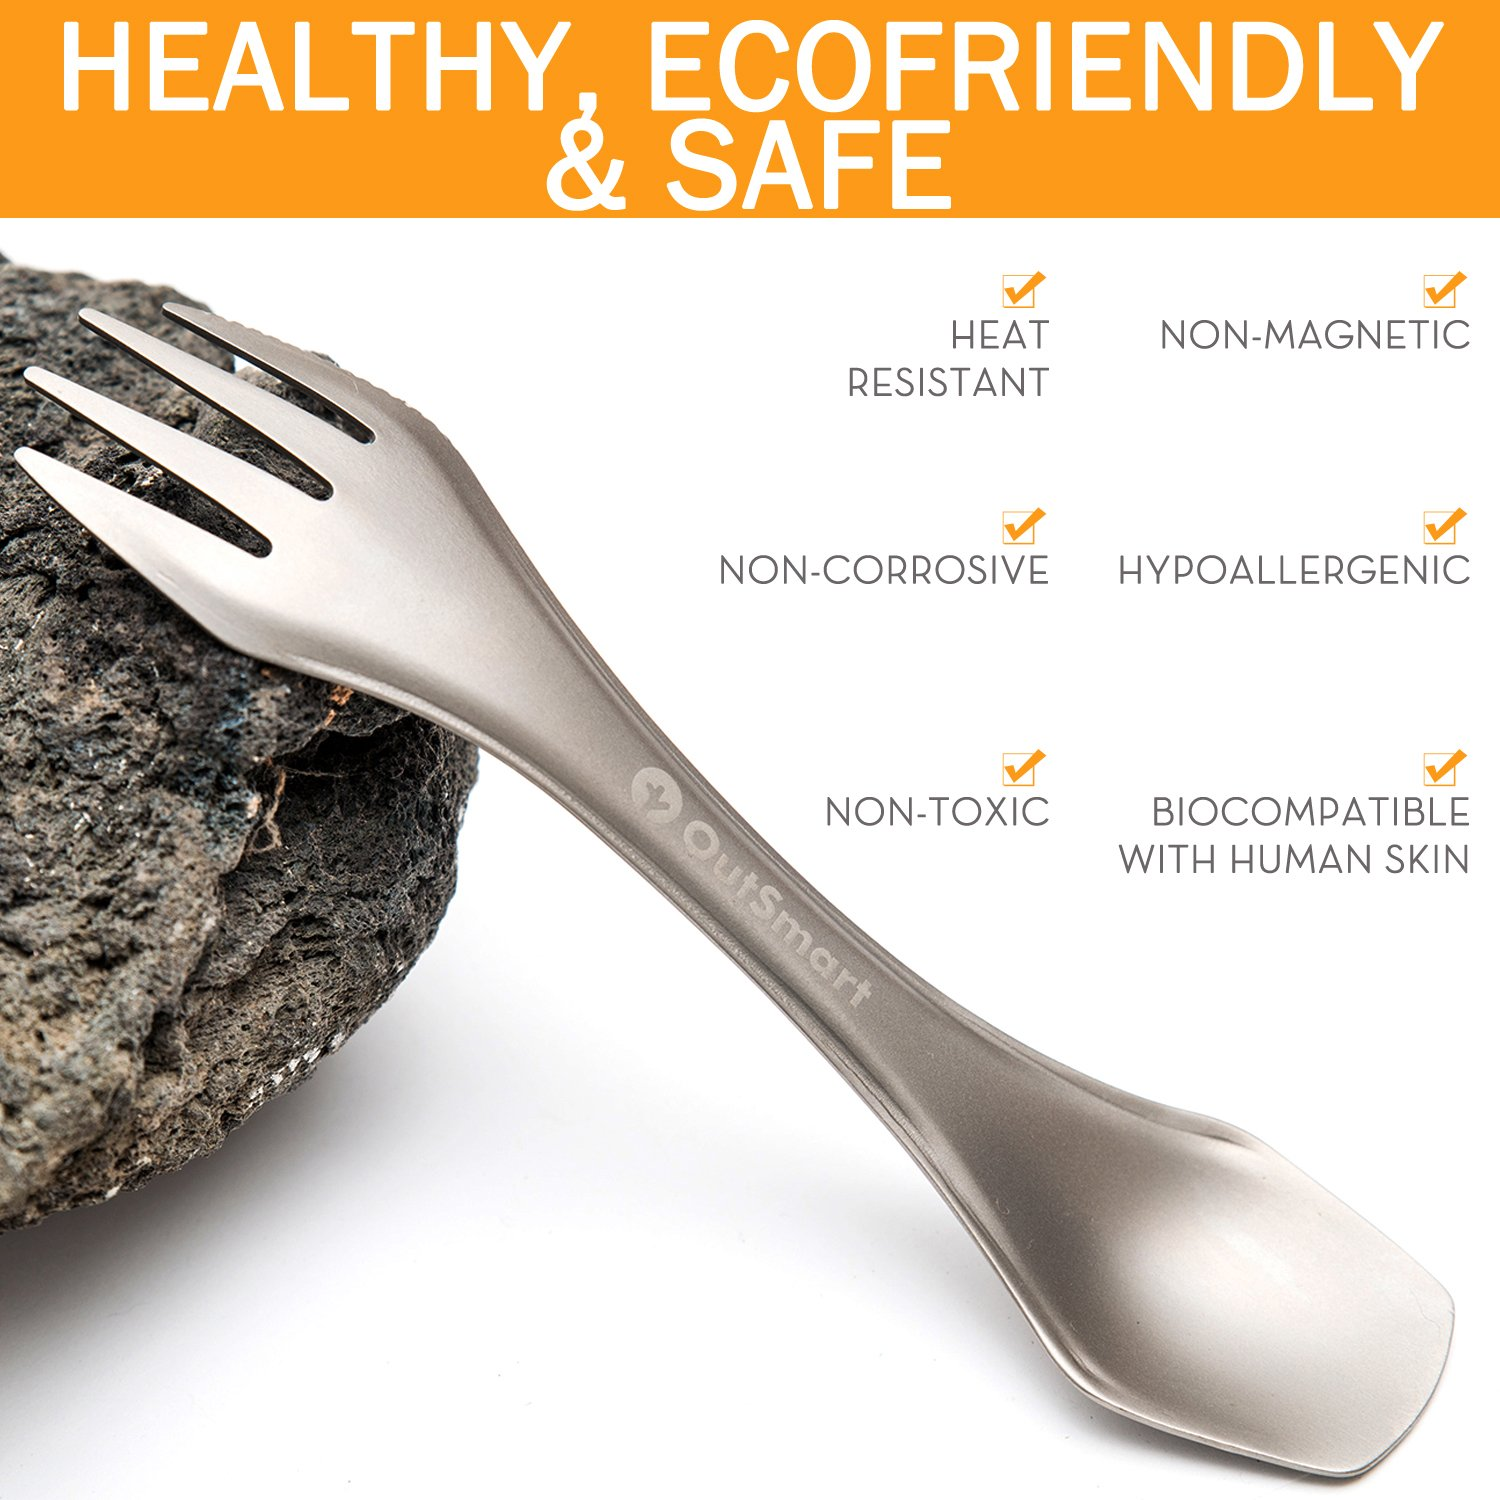 Feed Your Face Leave No Trace OutSmart 3 in 1 Titanium Spork Portable and Reusable Multi Tool for Backpacking and Camping